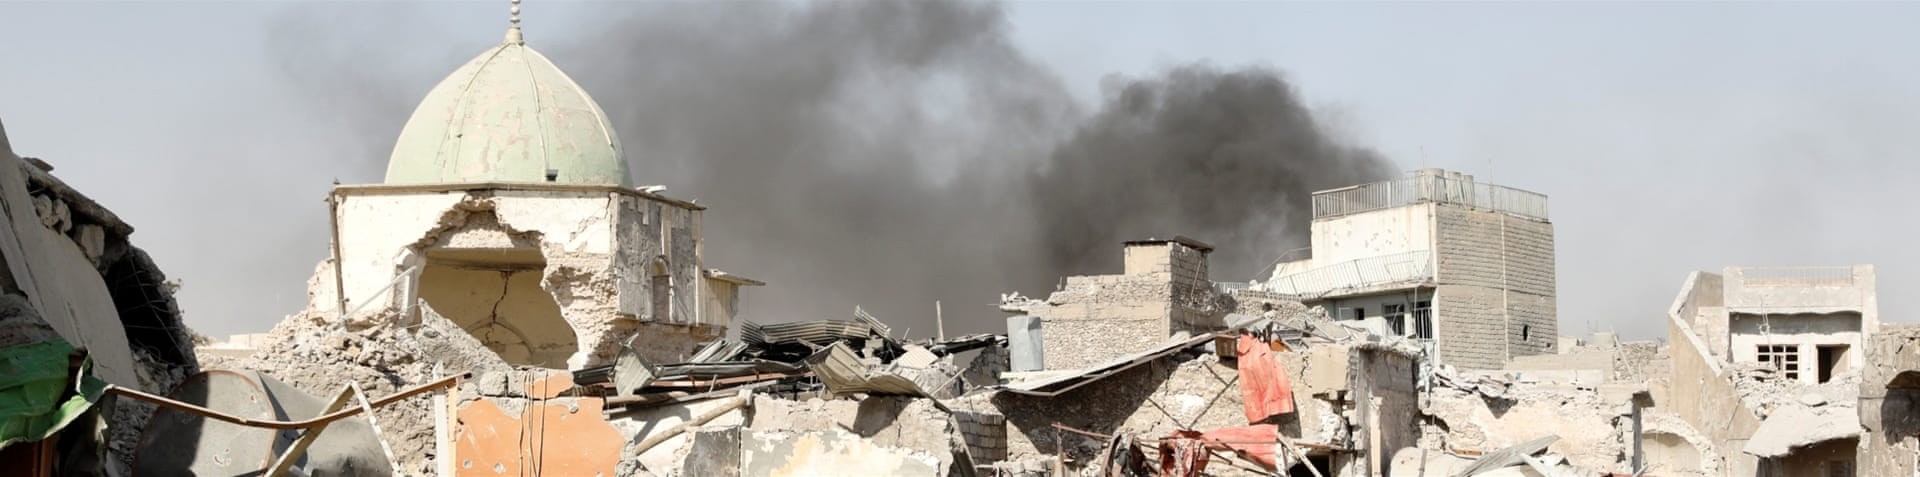 A large part of the mosque was blown up by ISIL last week [Reuters]